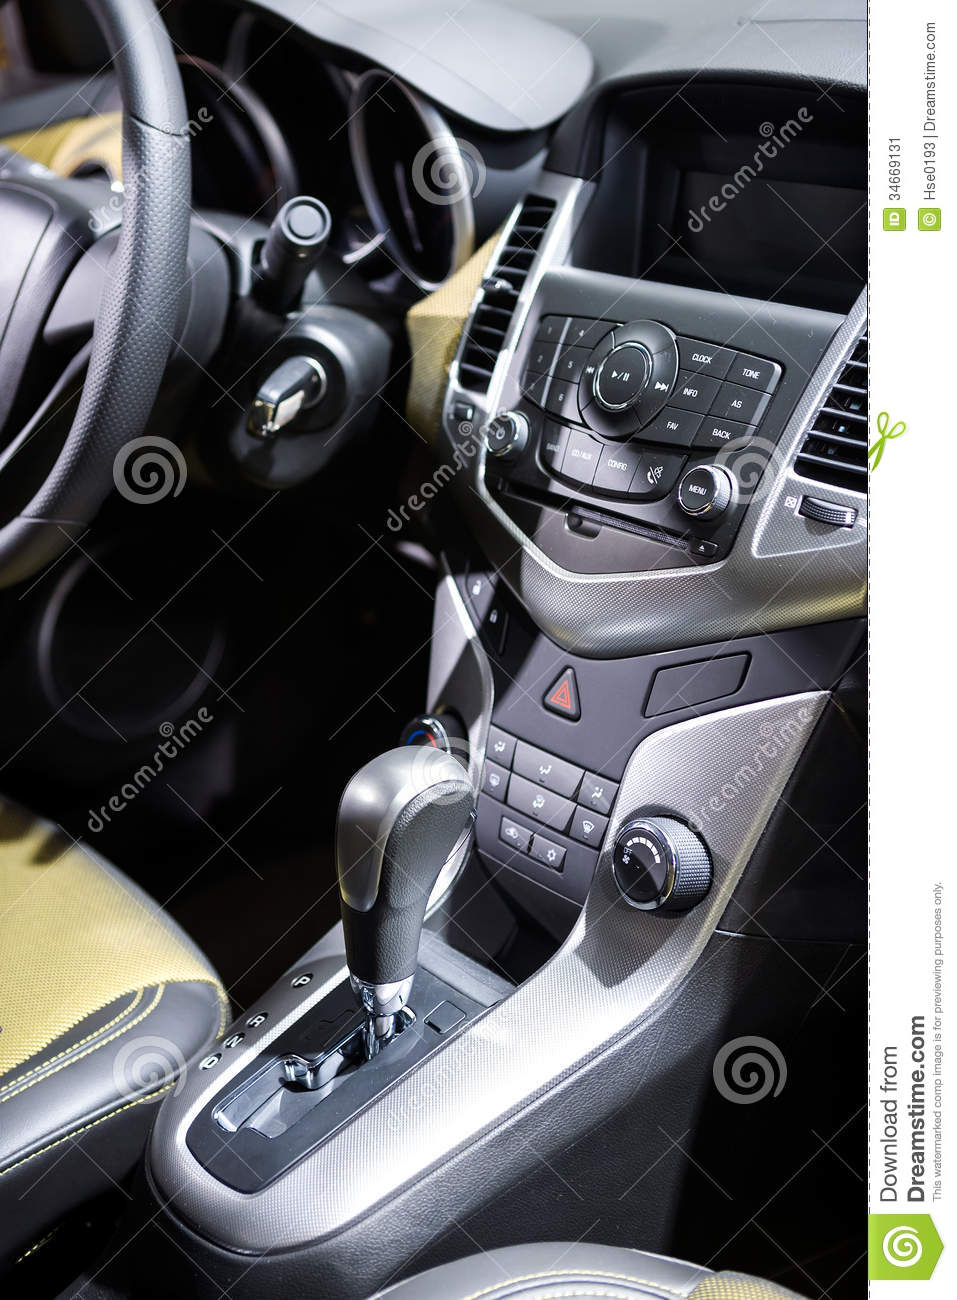 car control panel and automatic transmission stock image image 34669131. Black Bedroom Furniture Sets. Home Design Ideas